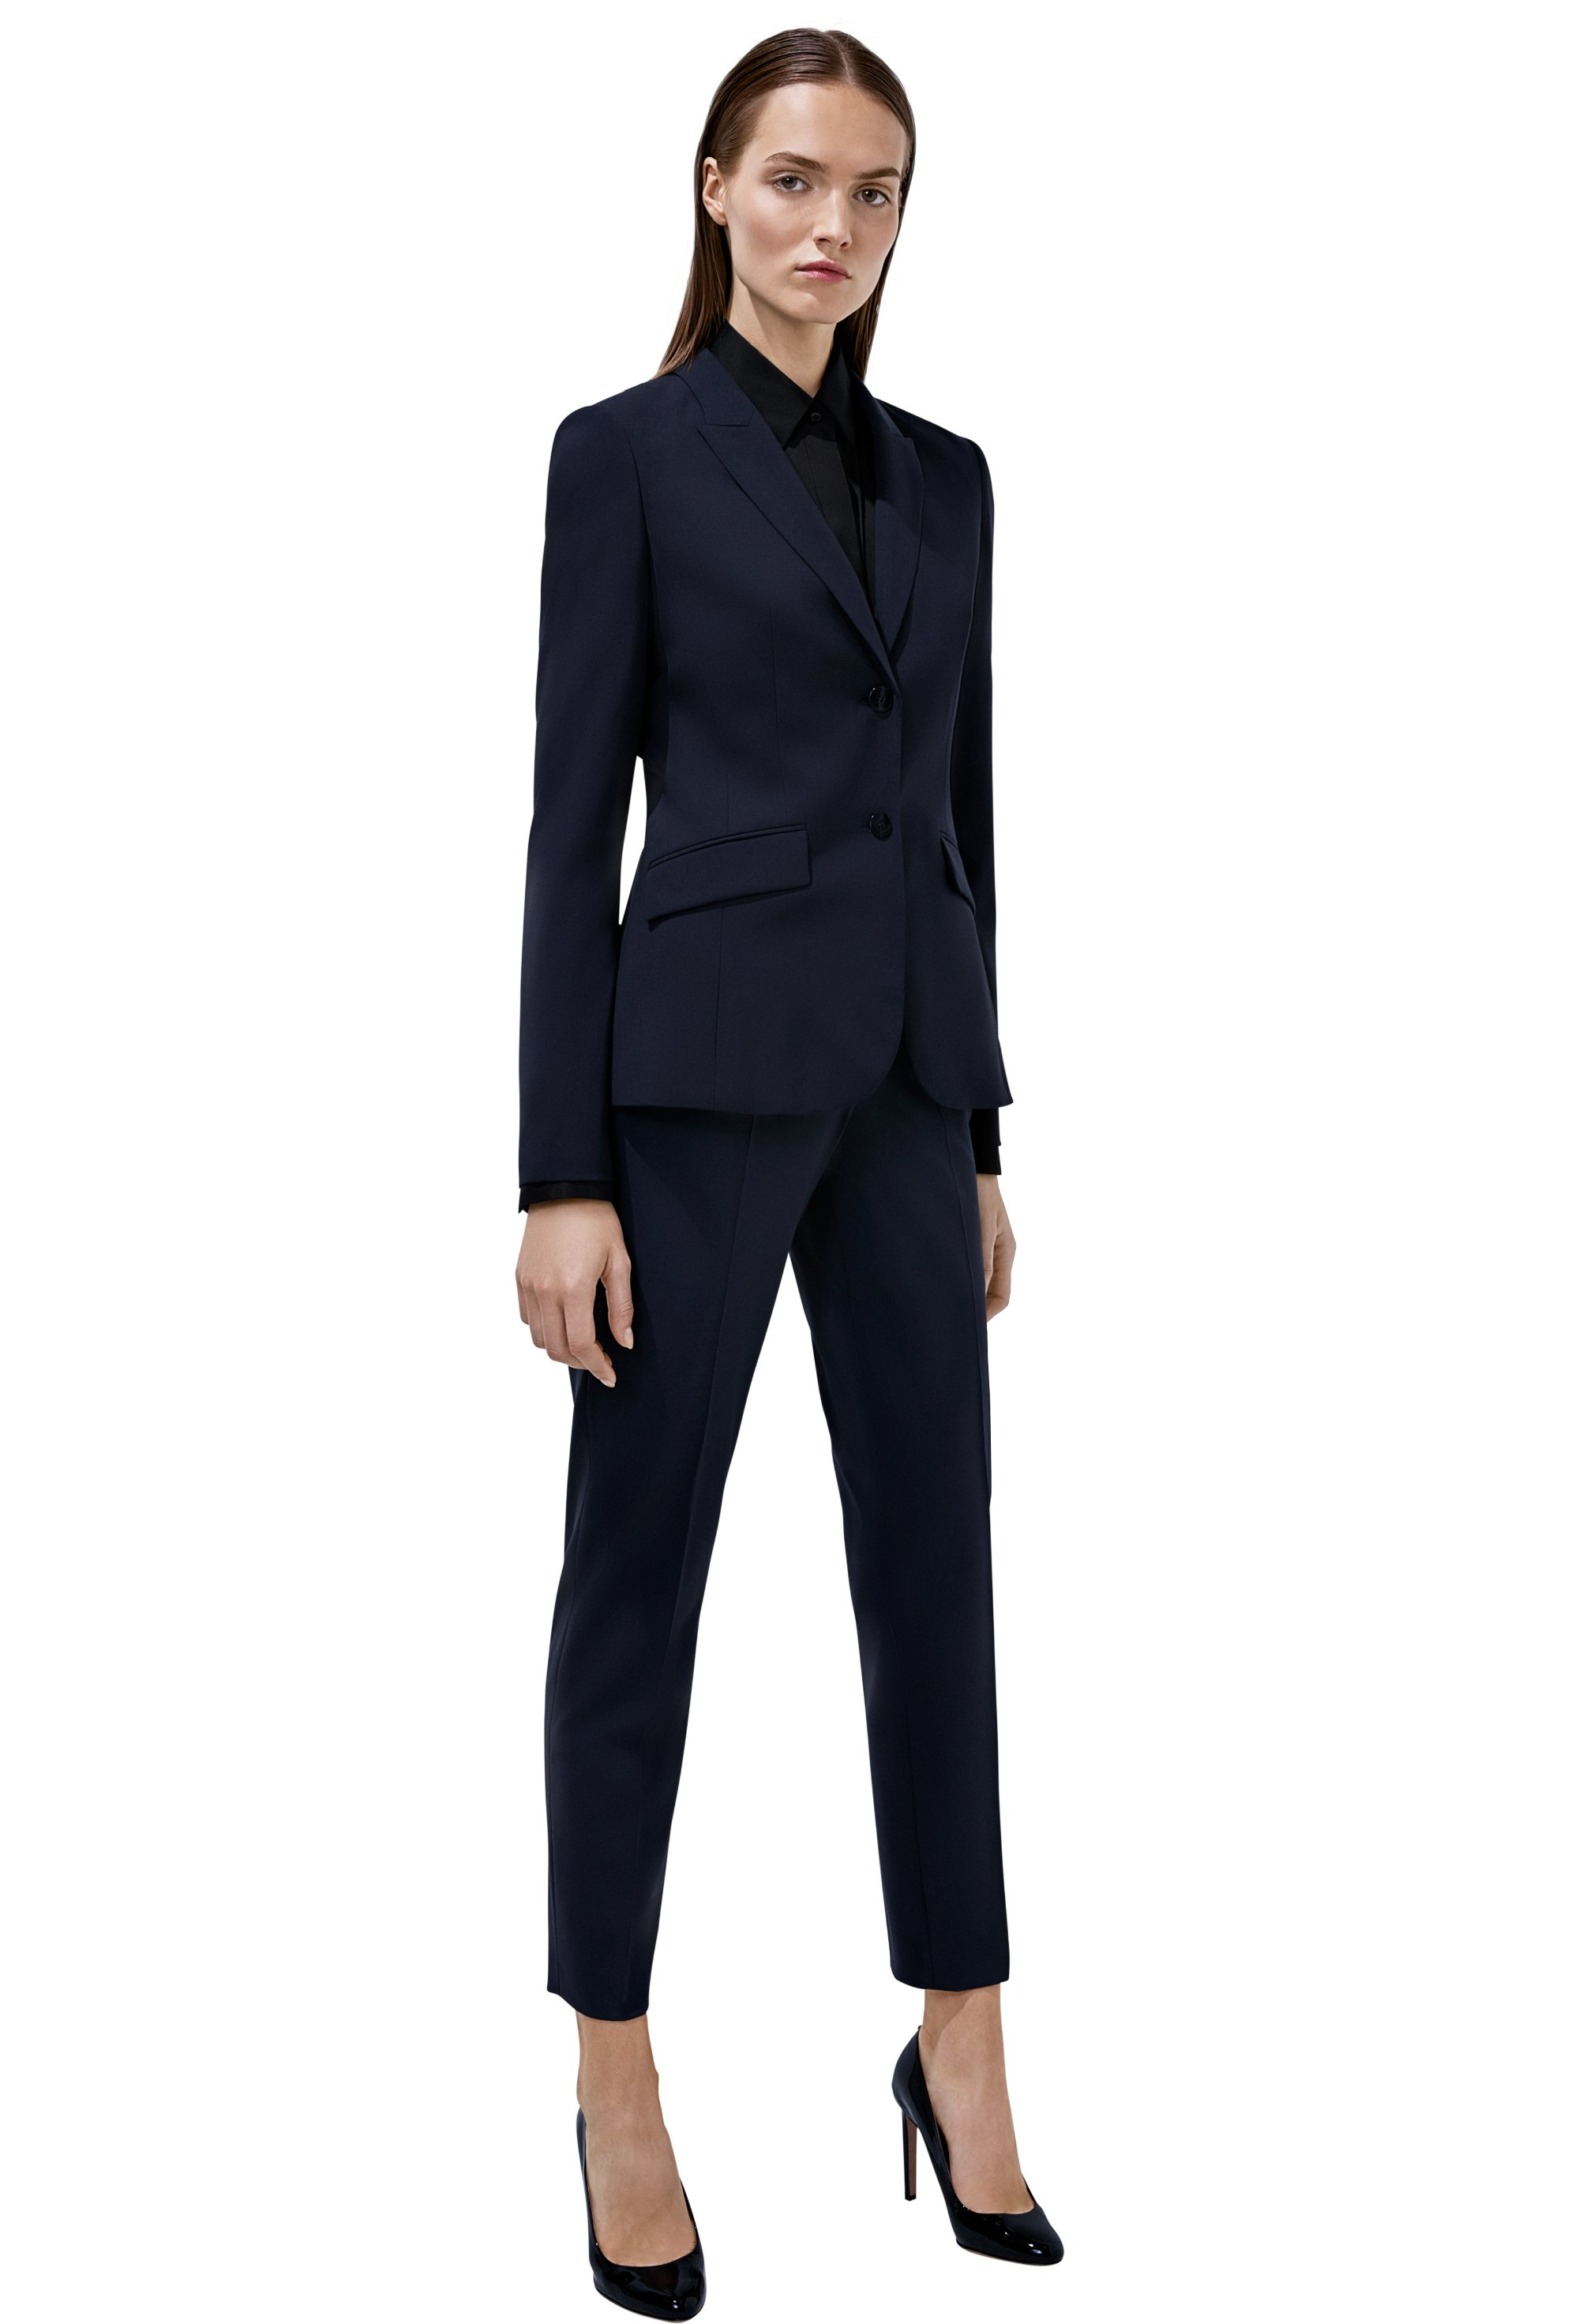 BOSS WOMEN Fundamentals SR17 Look 5,